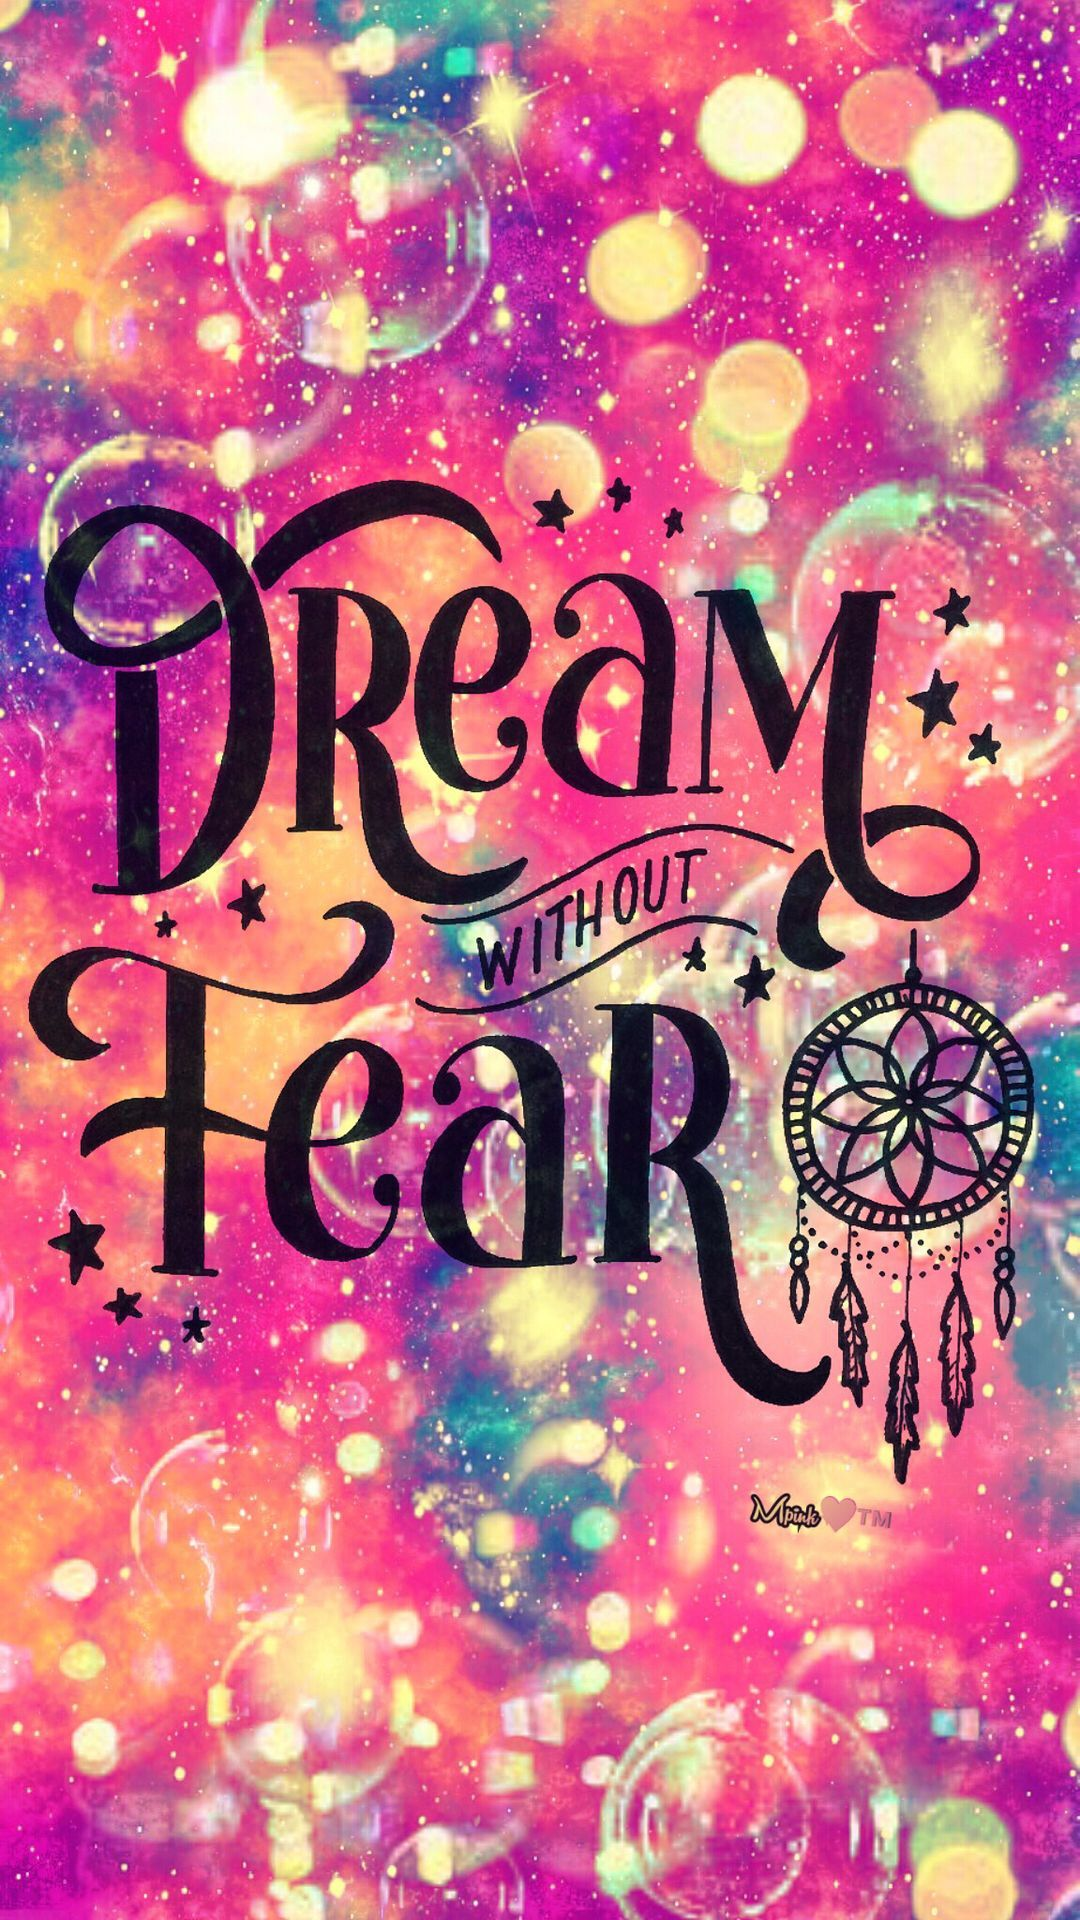 1080x1920 Dream Without Fear Galaxy Wallpaper #androidwallpaper ...